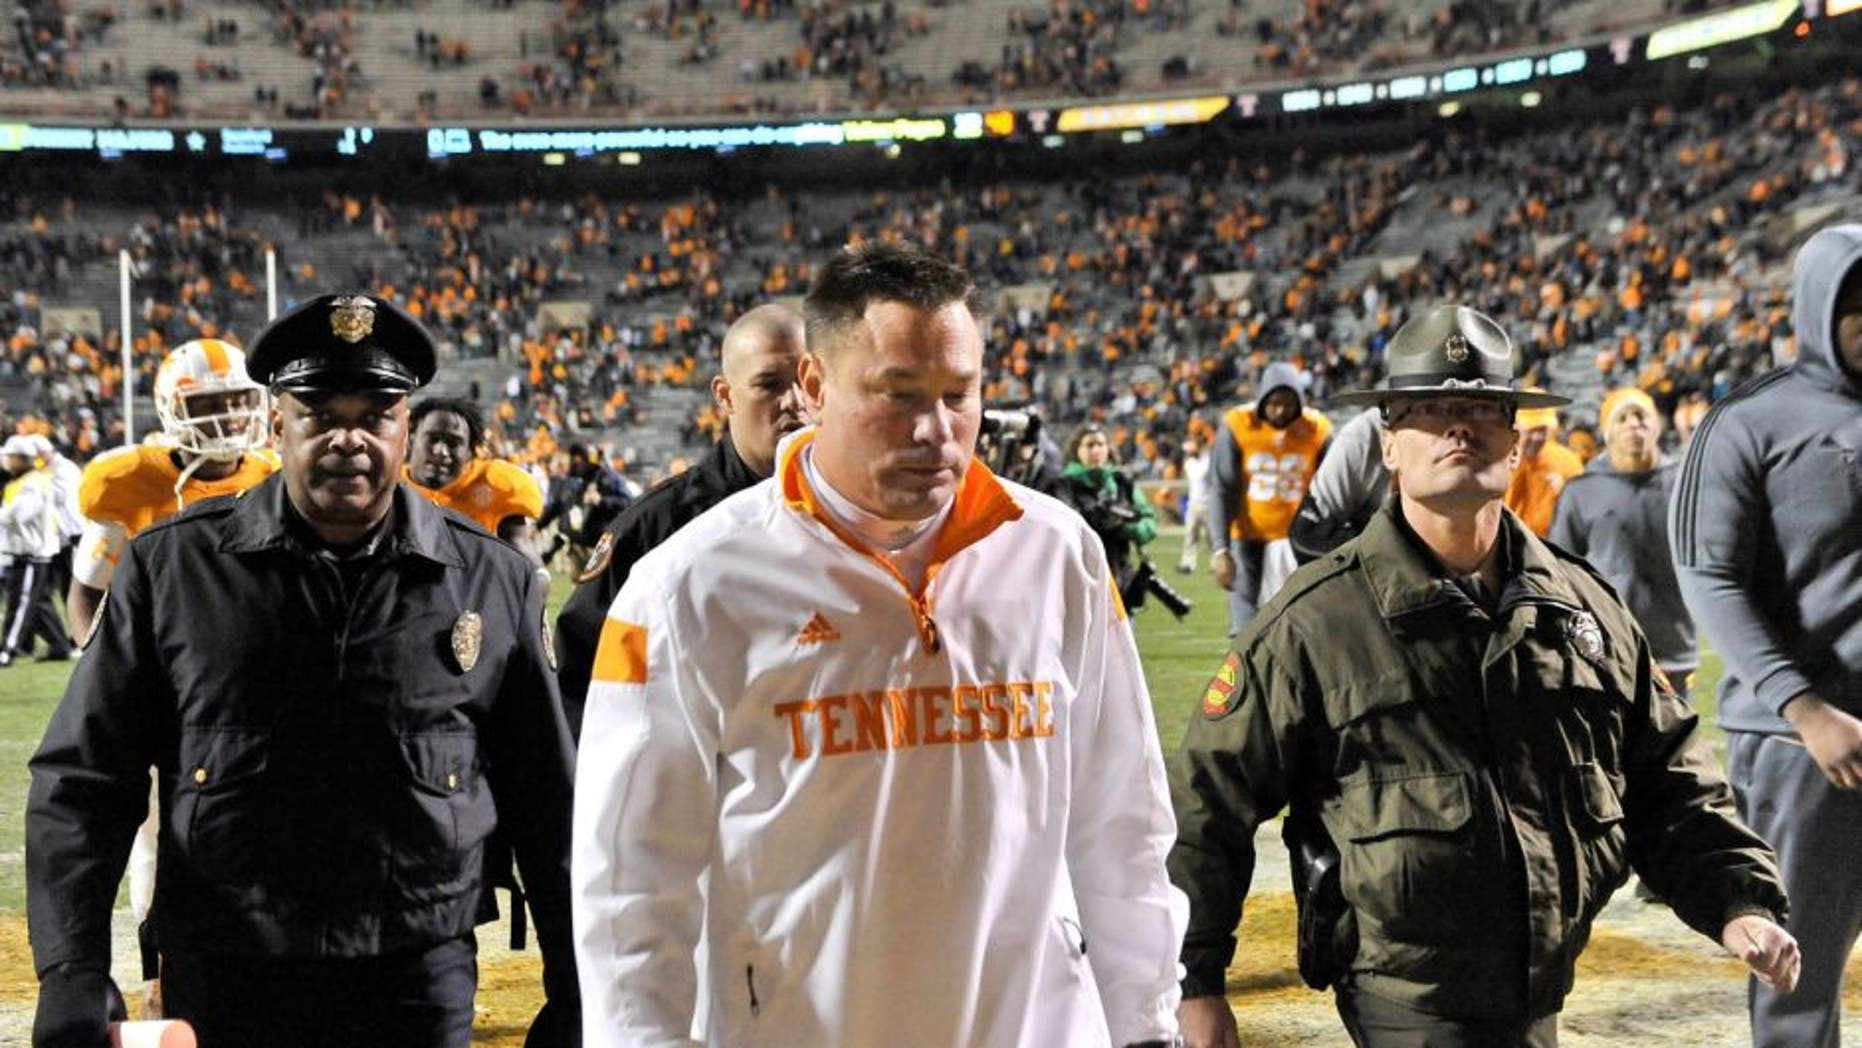 Nov 22, 2014; Knoxville, TN, USA; Tennessee Volunteers head coach Butch Jones leaves the field after his team lost to the Missouri Tigers during the second half at Neyland Stadium. Missouri won 29-21. Mandatory Credit: Jim Brown-USA TODAY Sports